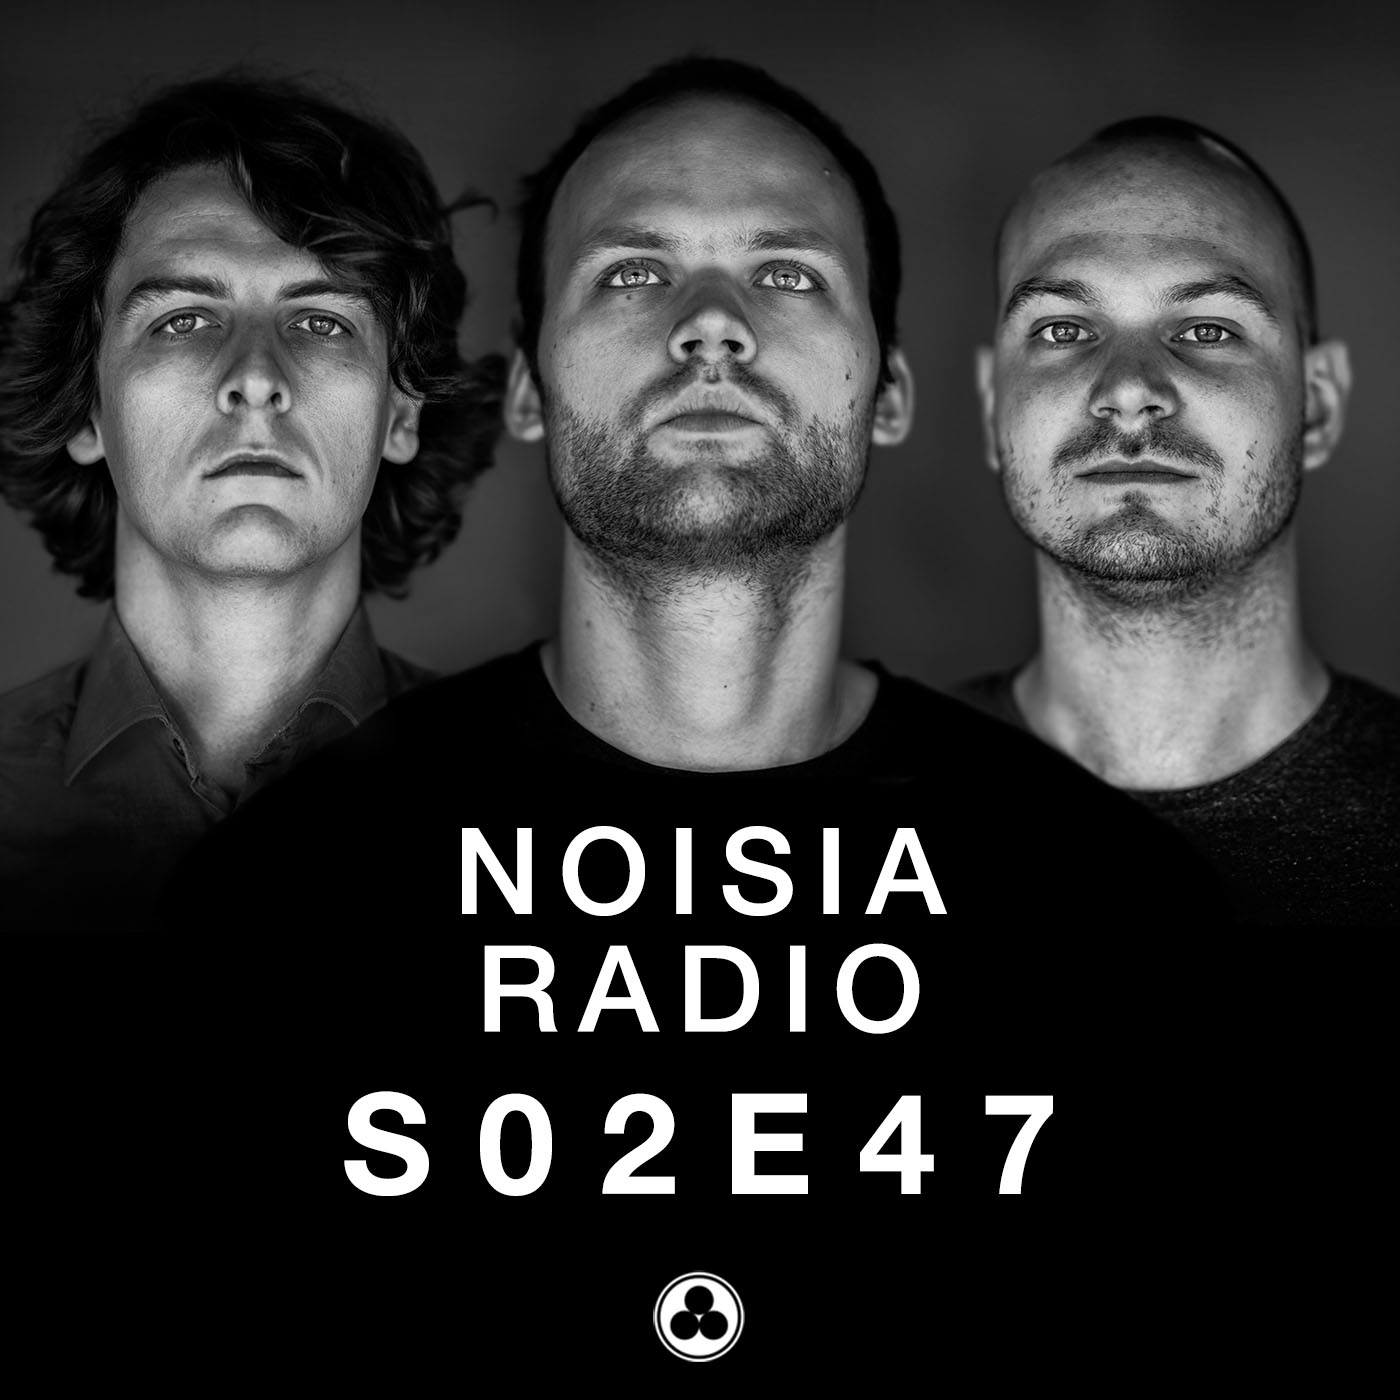 Noisia Radio S02E47